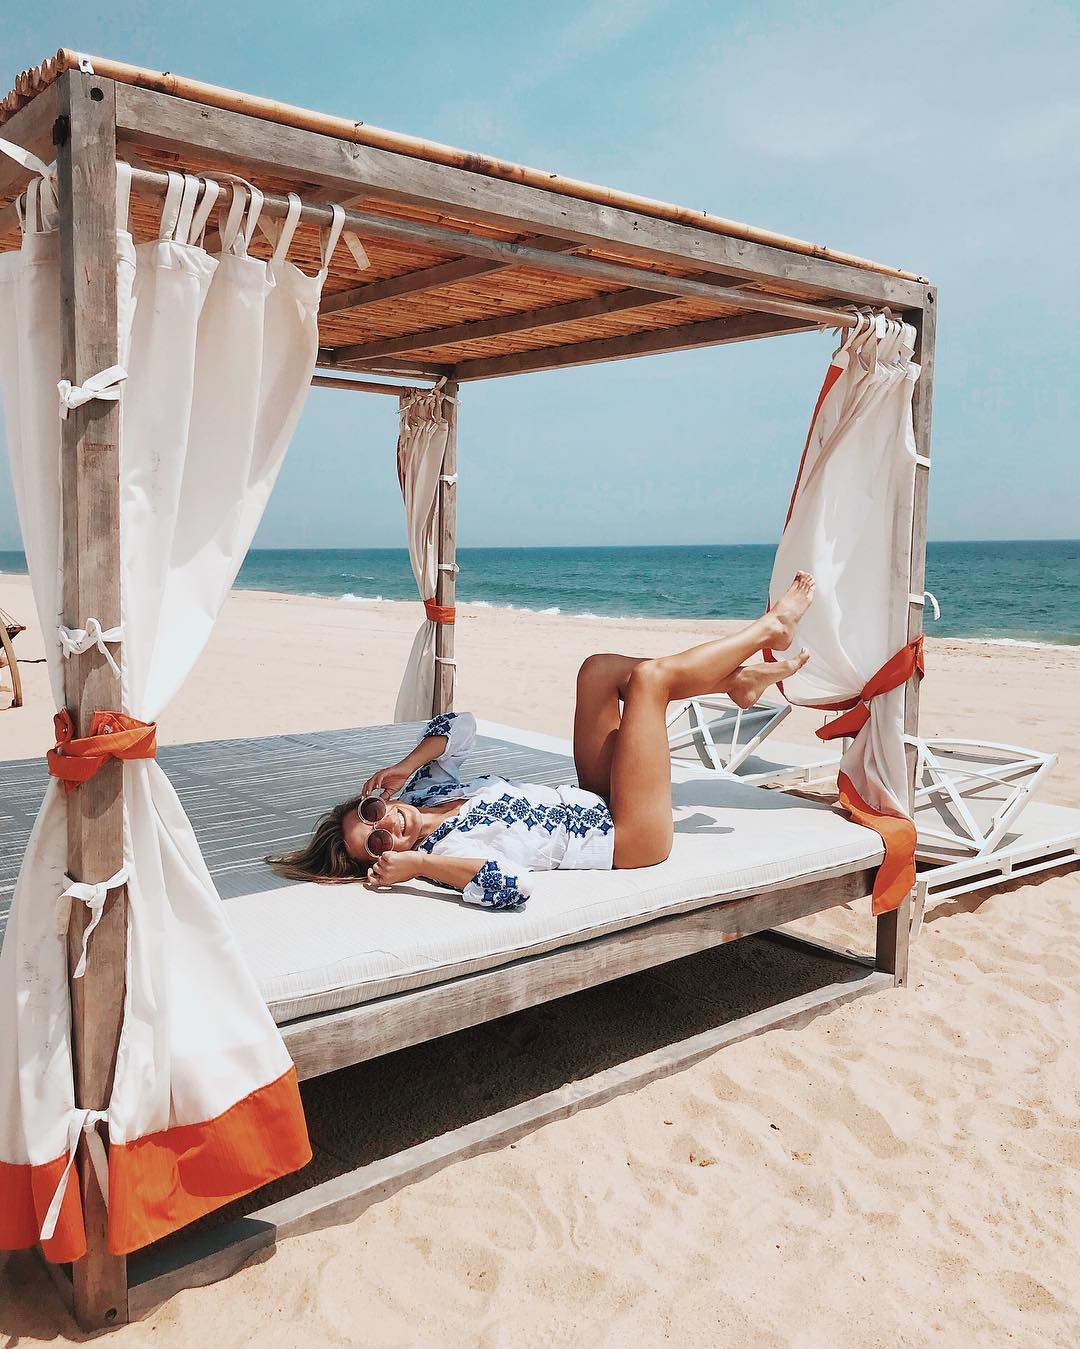 bachelorette cities gurneys montaul women lying on day bed on the beach